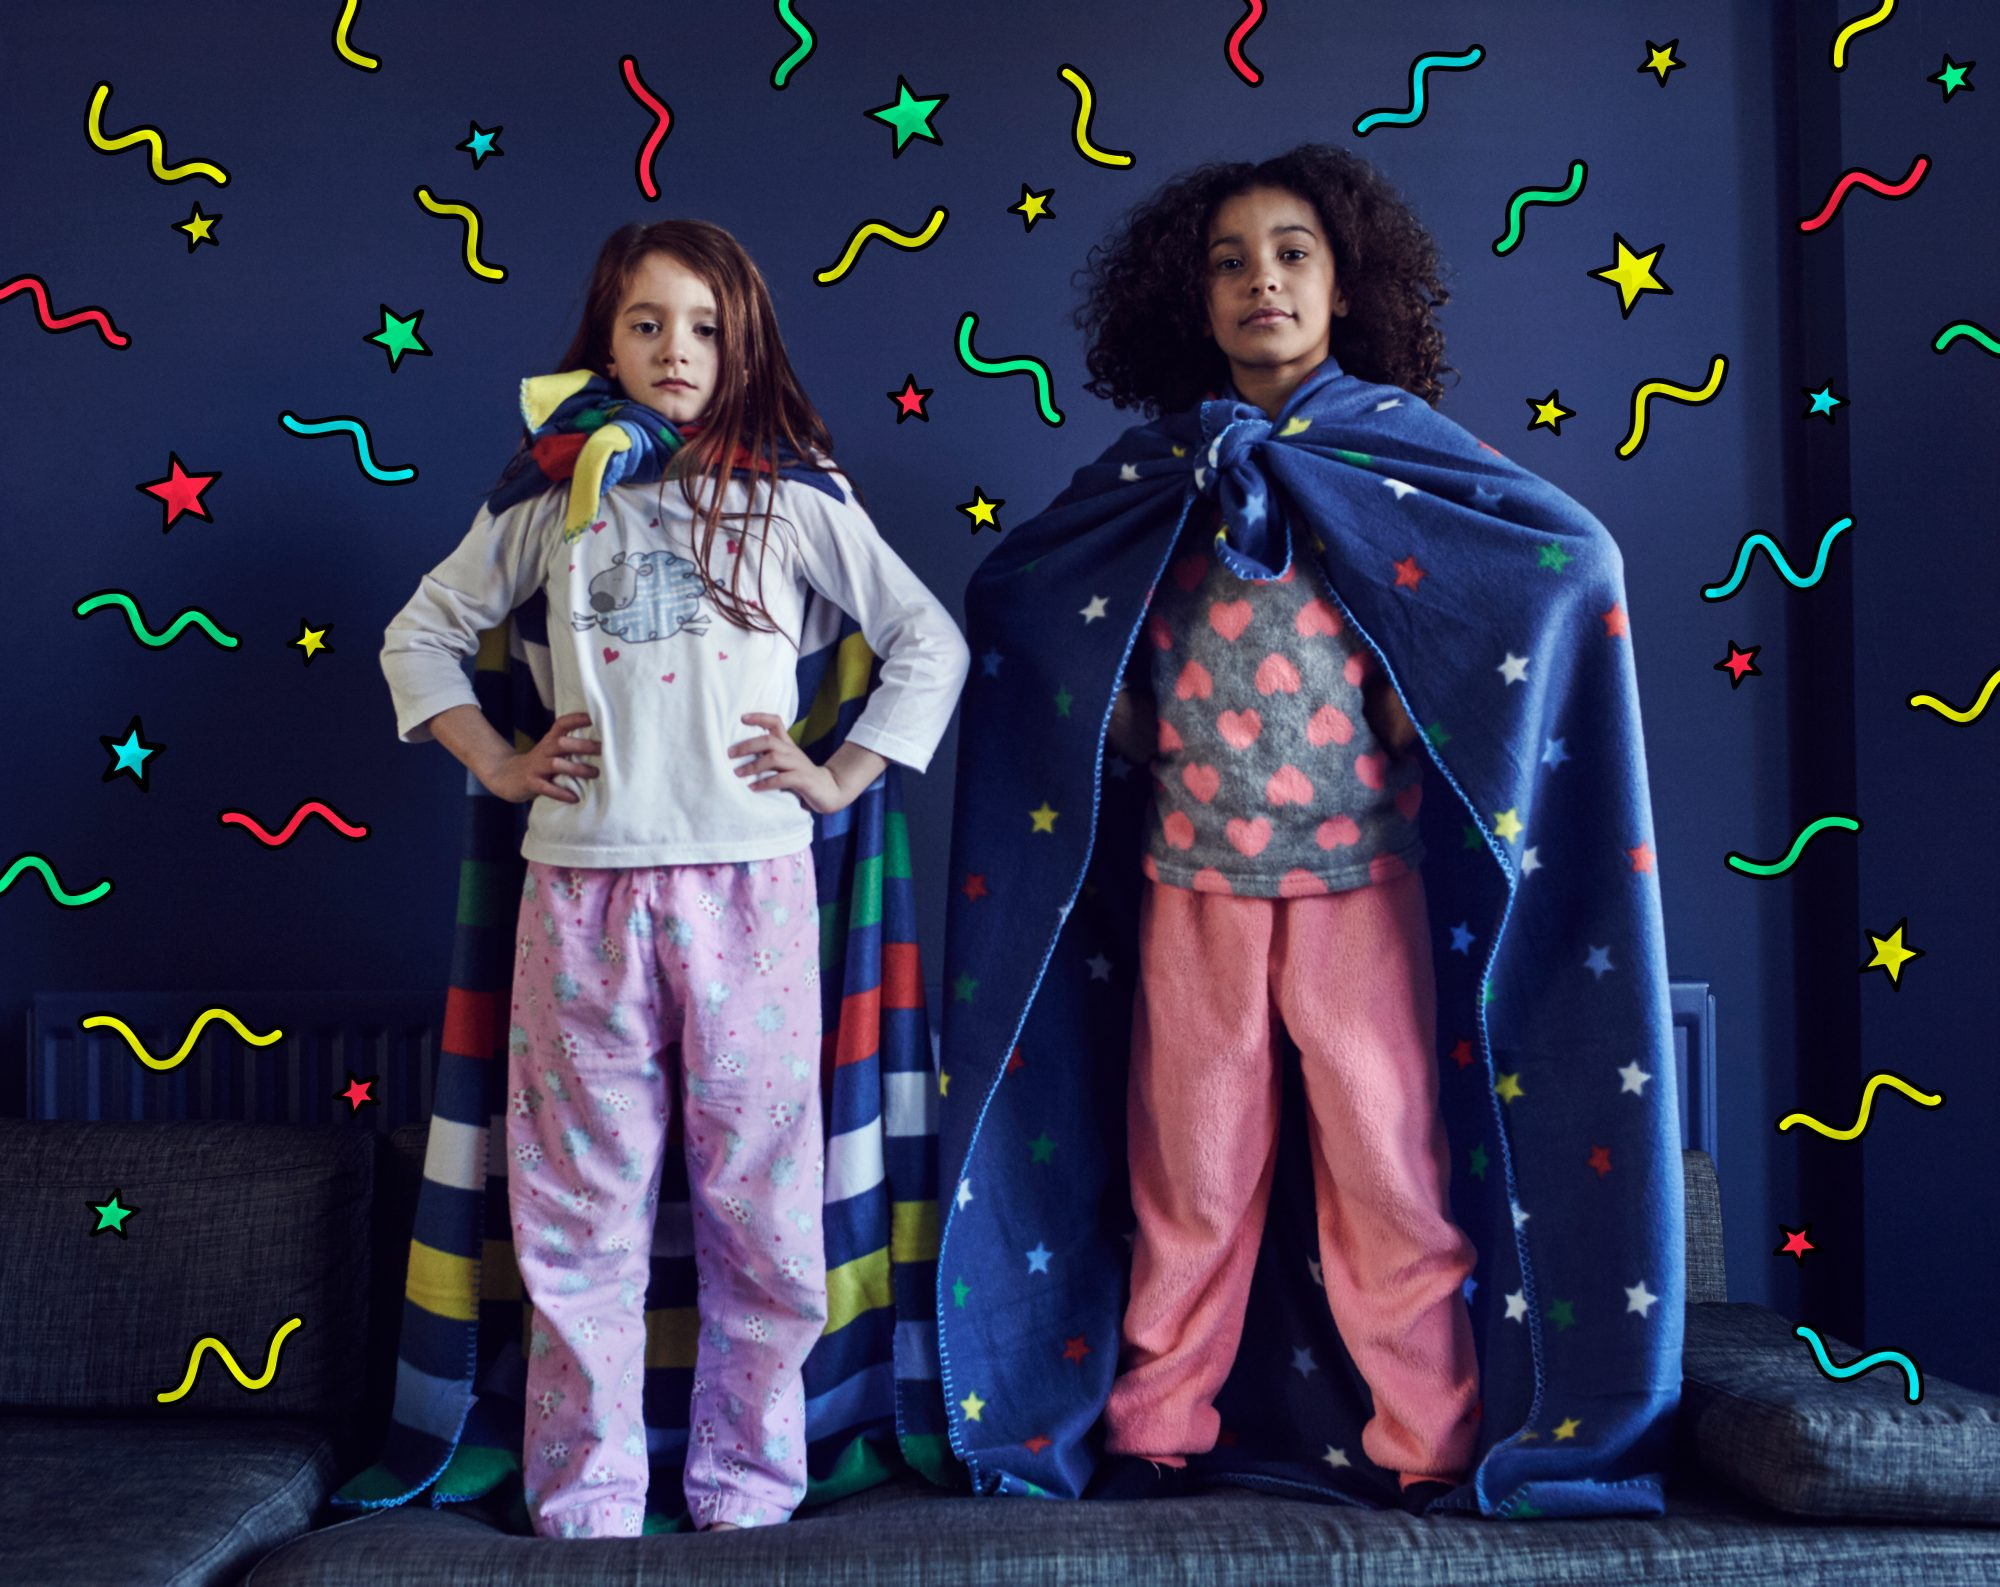 Girls dressed as Superheroes with graphic symbols